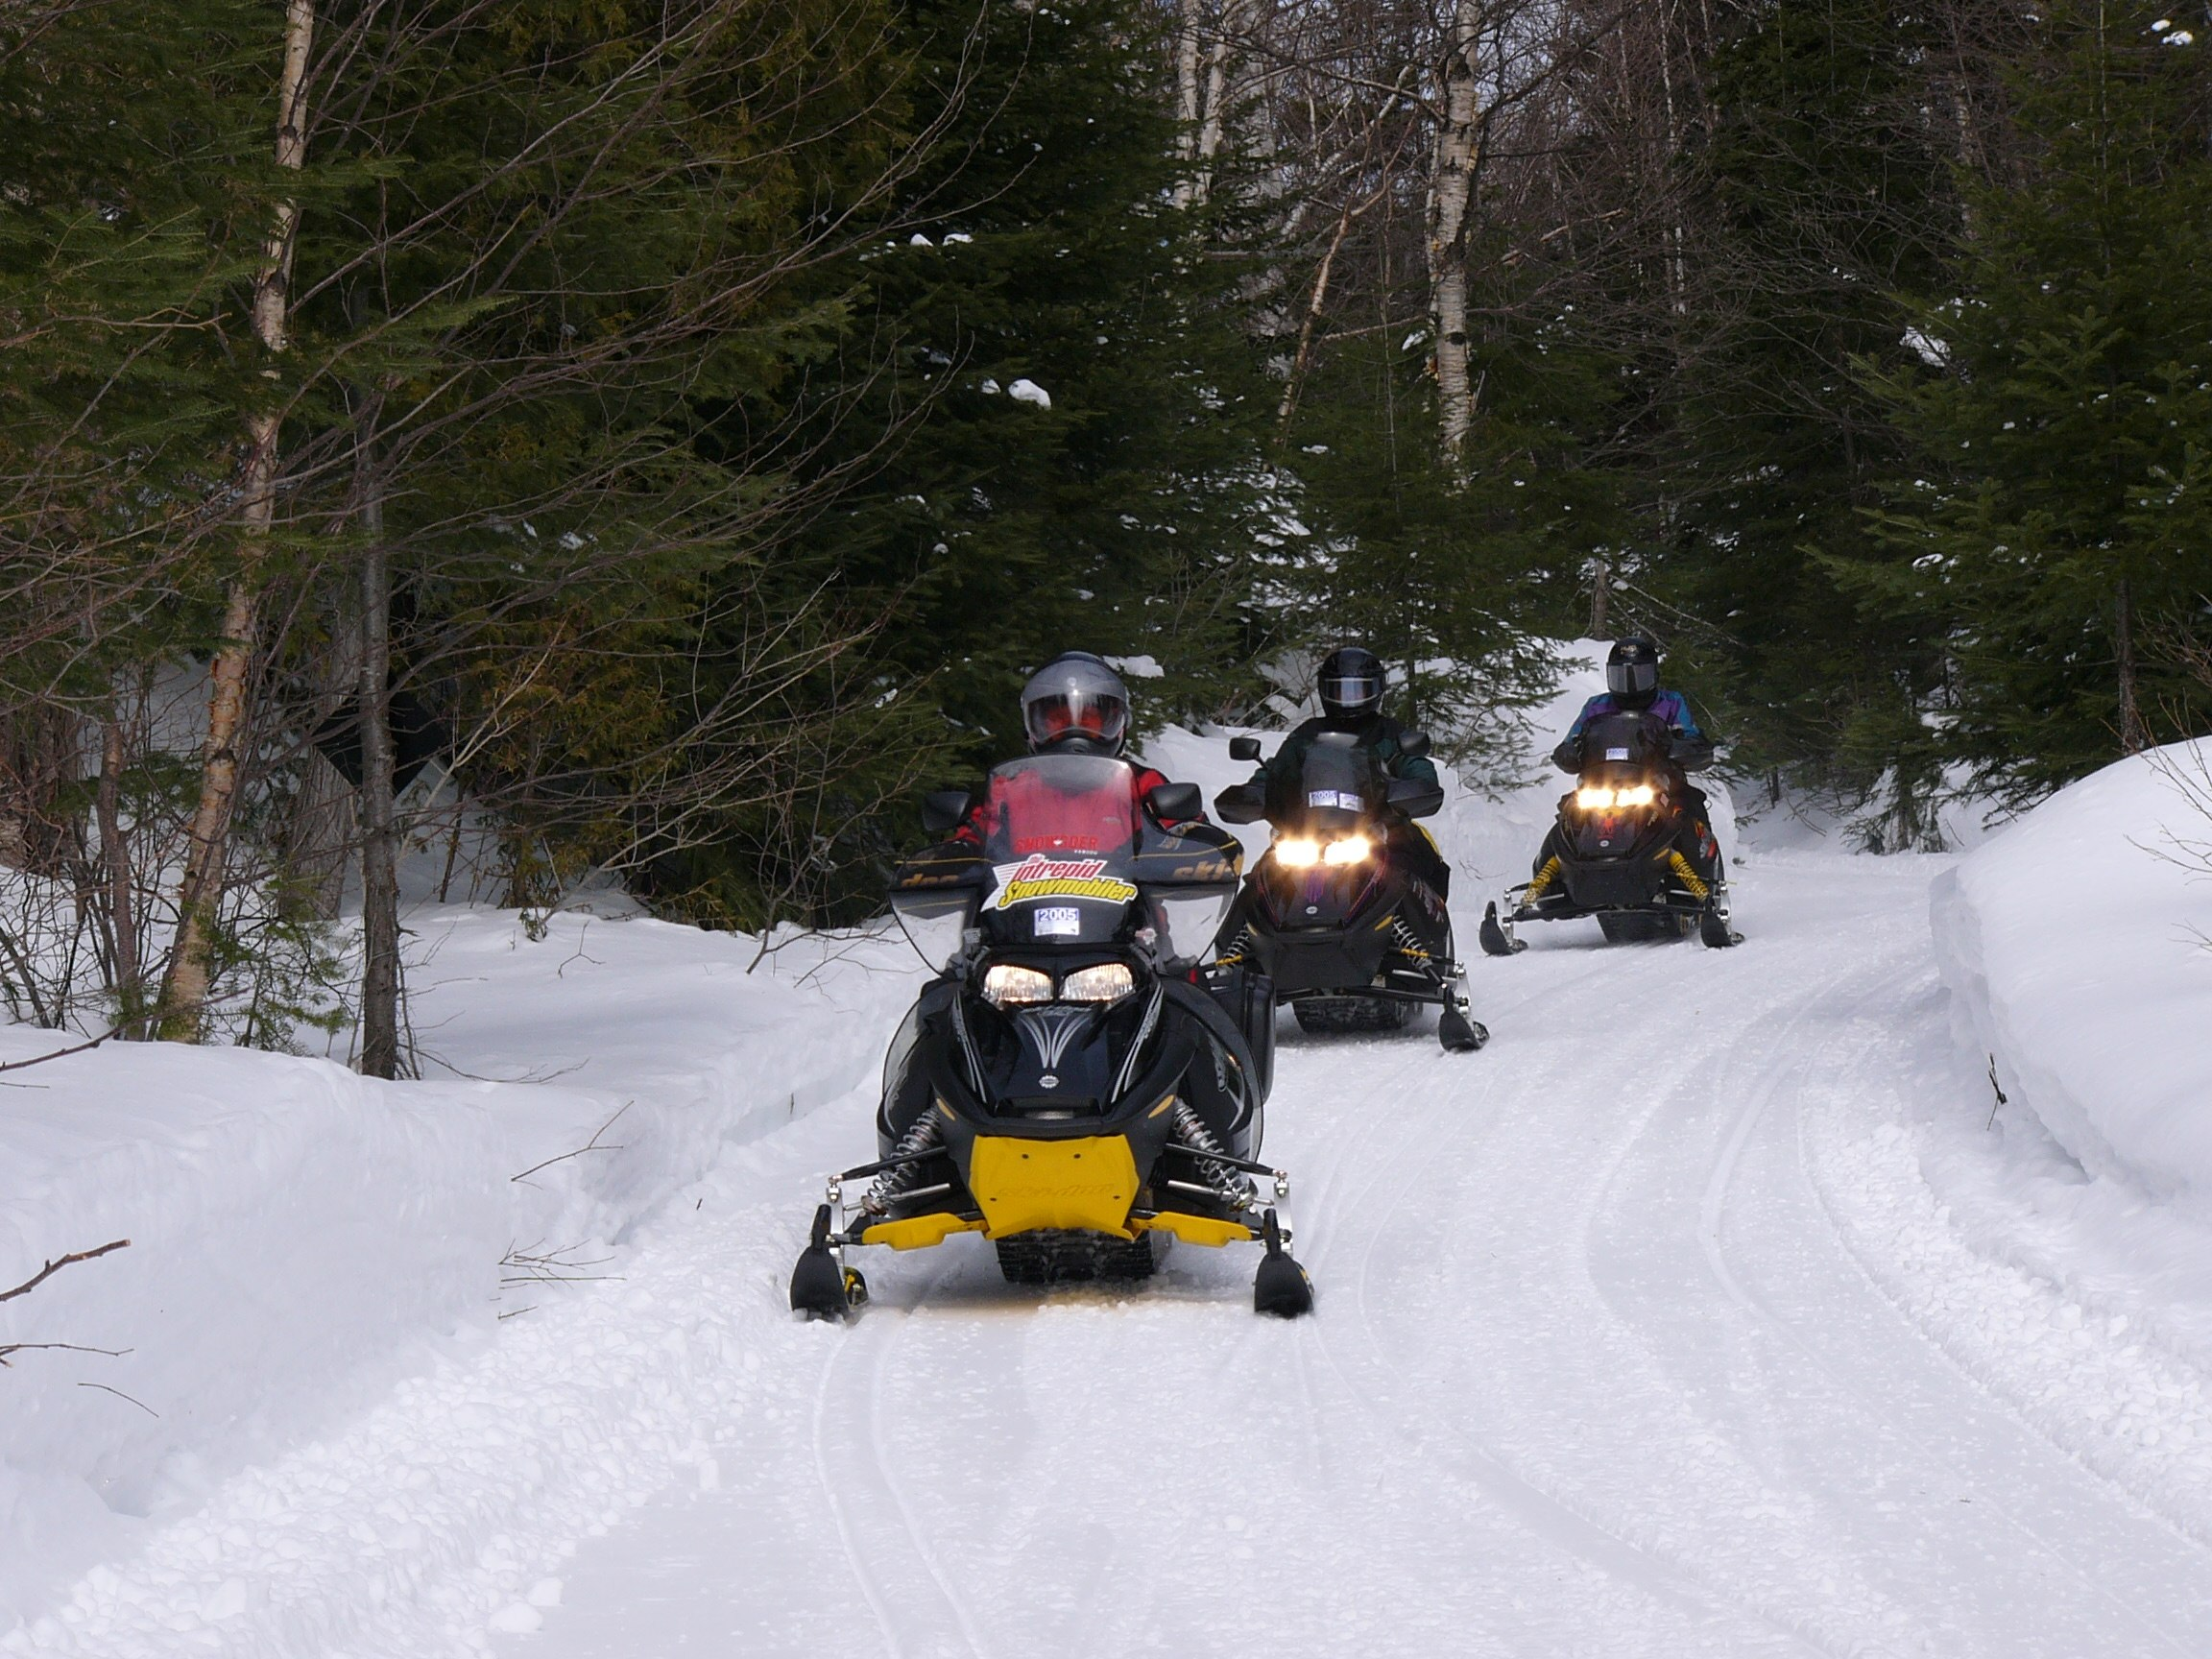 Snowmobile Ontario Canada Overview & Videos